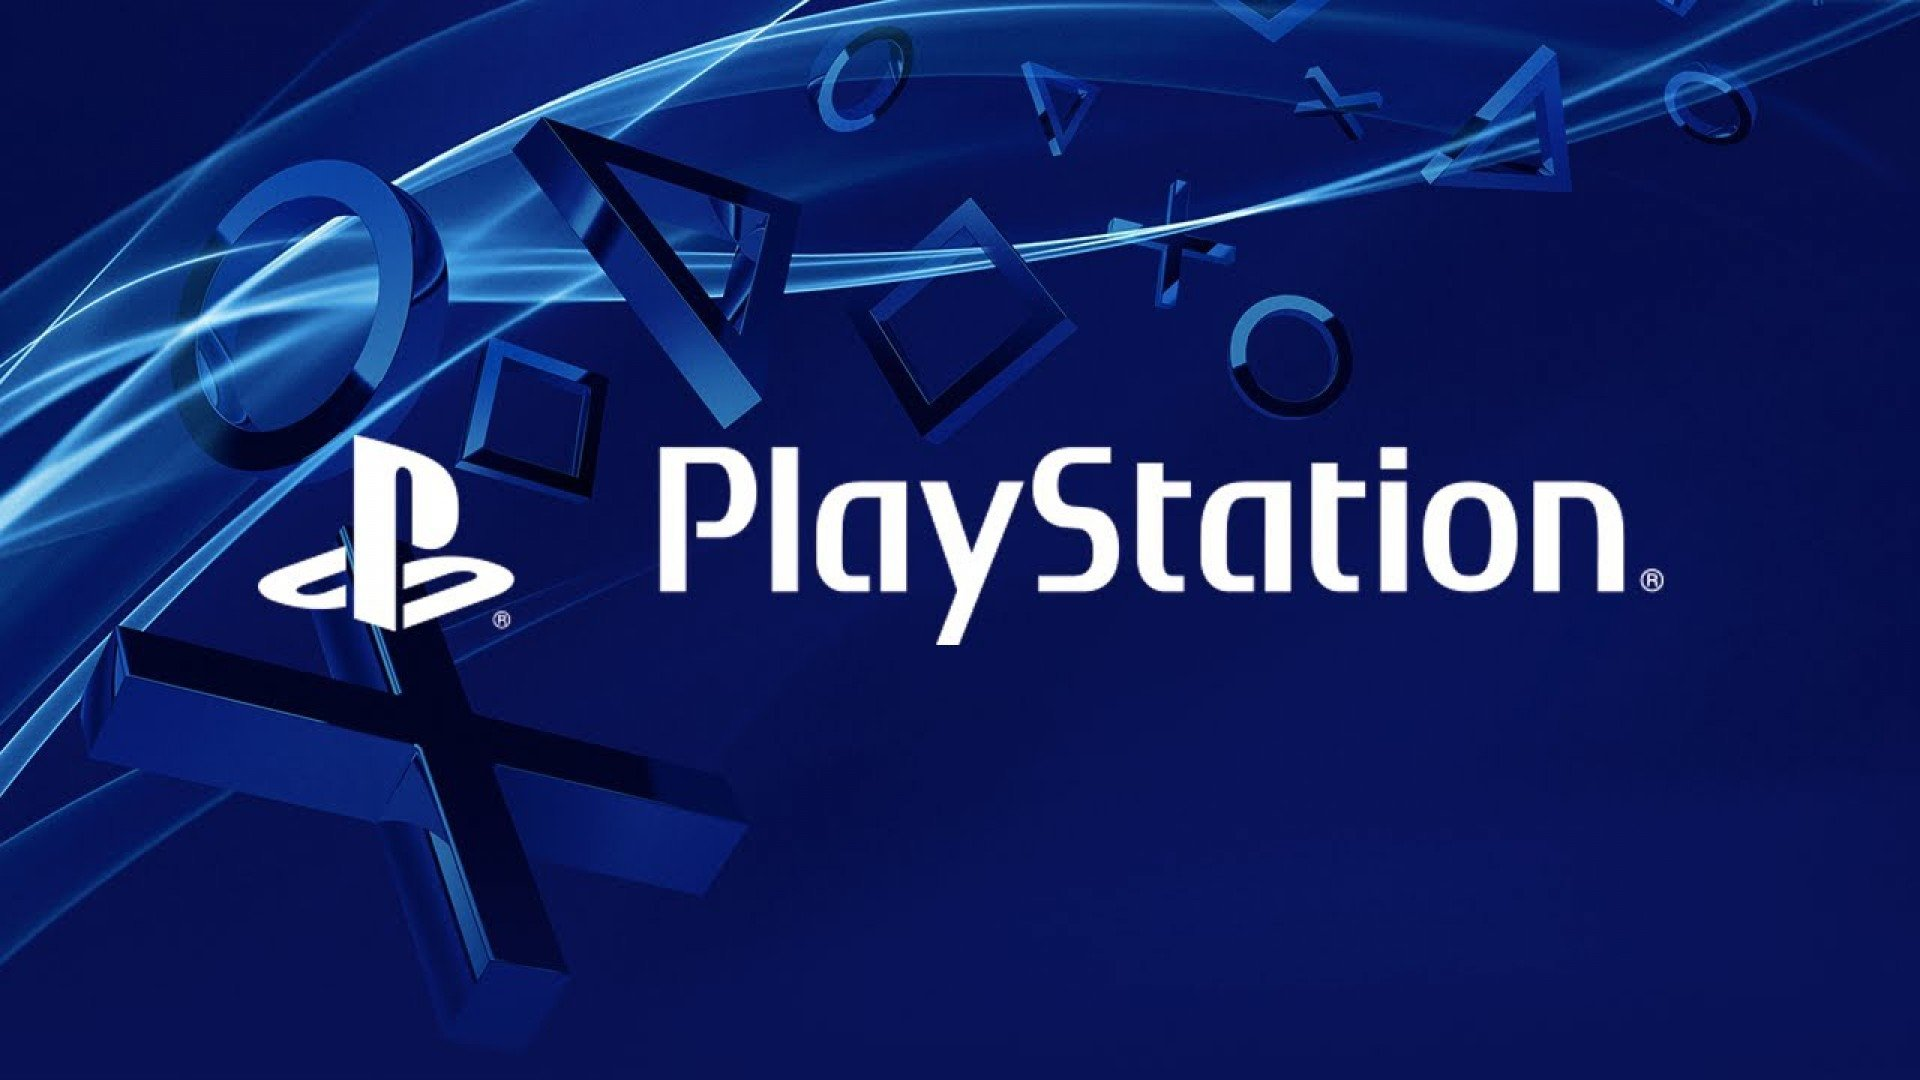 Play station 5 logo